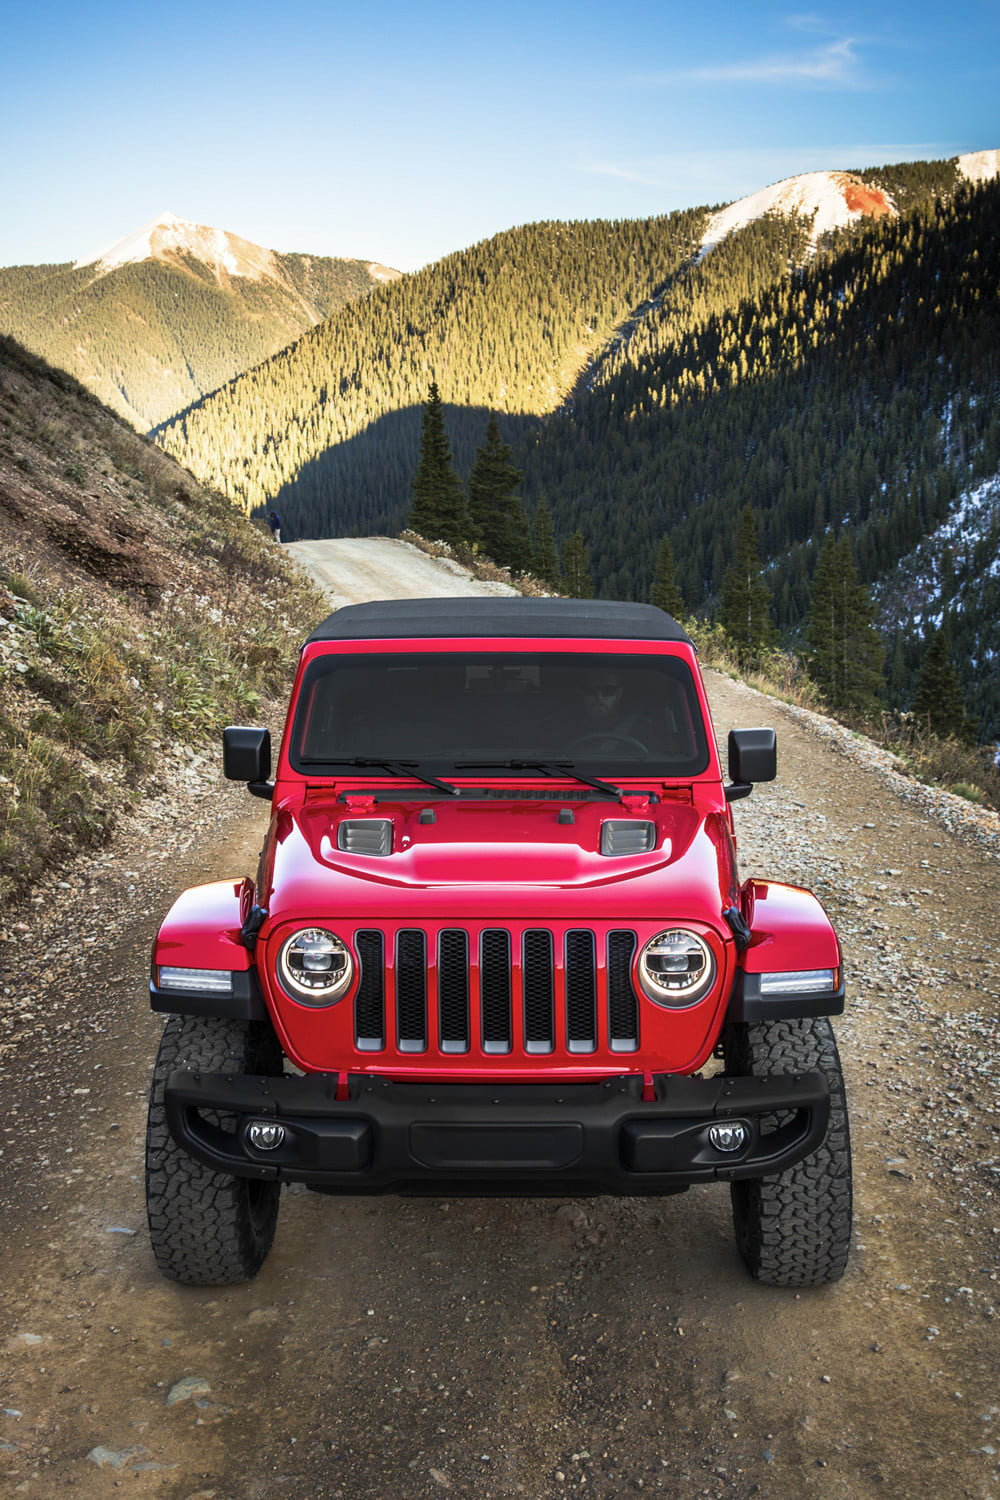 2018 jeep wrangler first drive review pictures specs digital trends. Black Bedroom Furniture Sets. Home Design Ideas